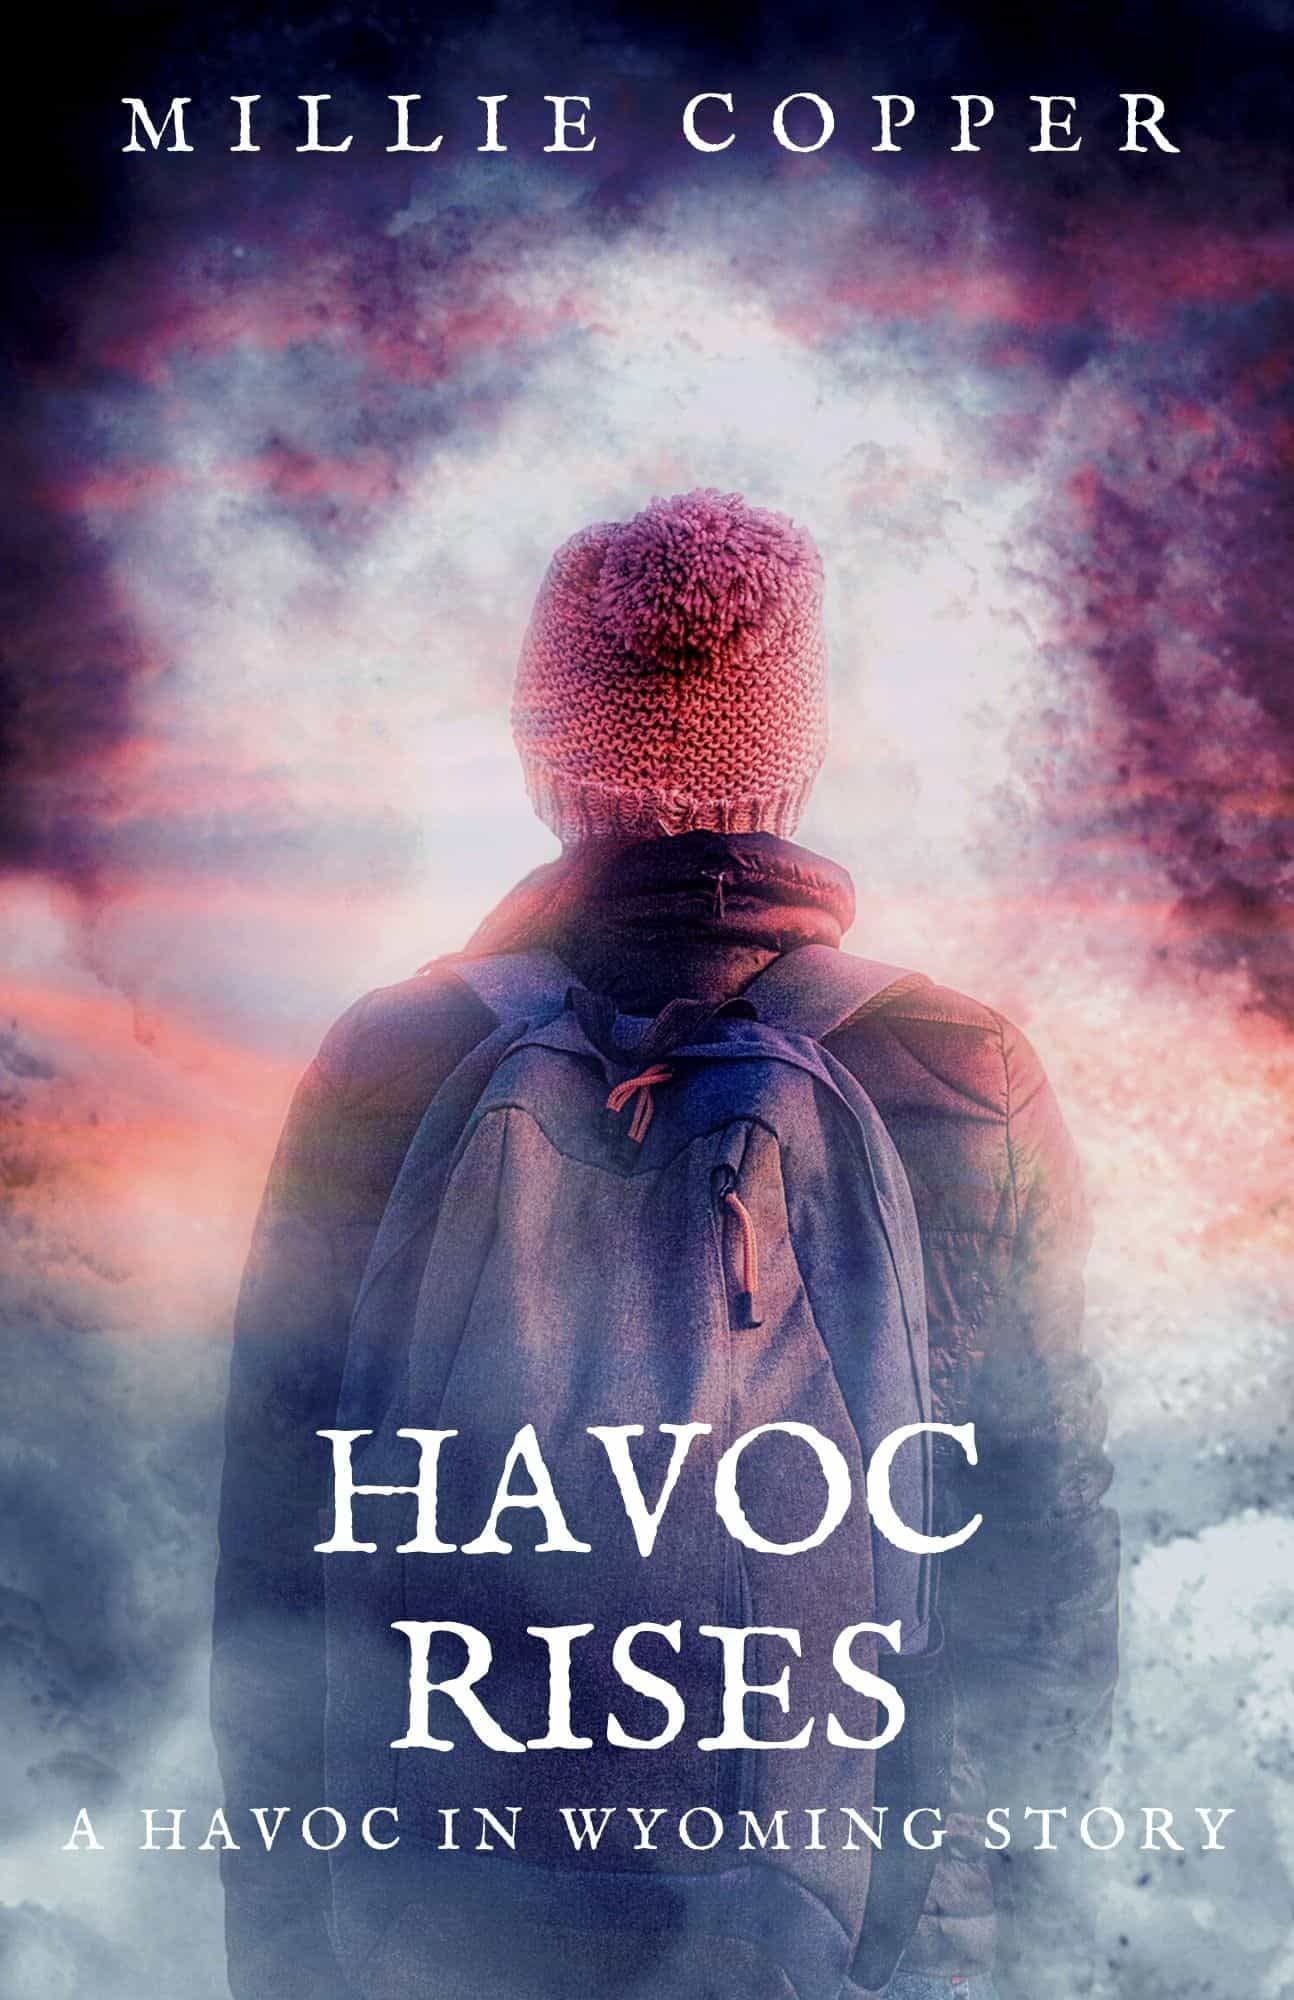 Havoc Rises: A Havoc in Wyoming Story